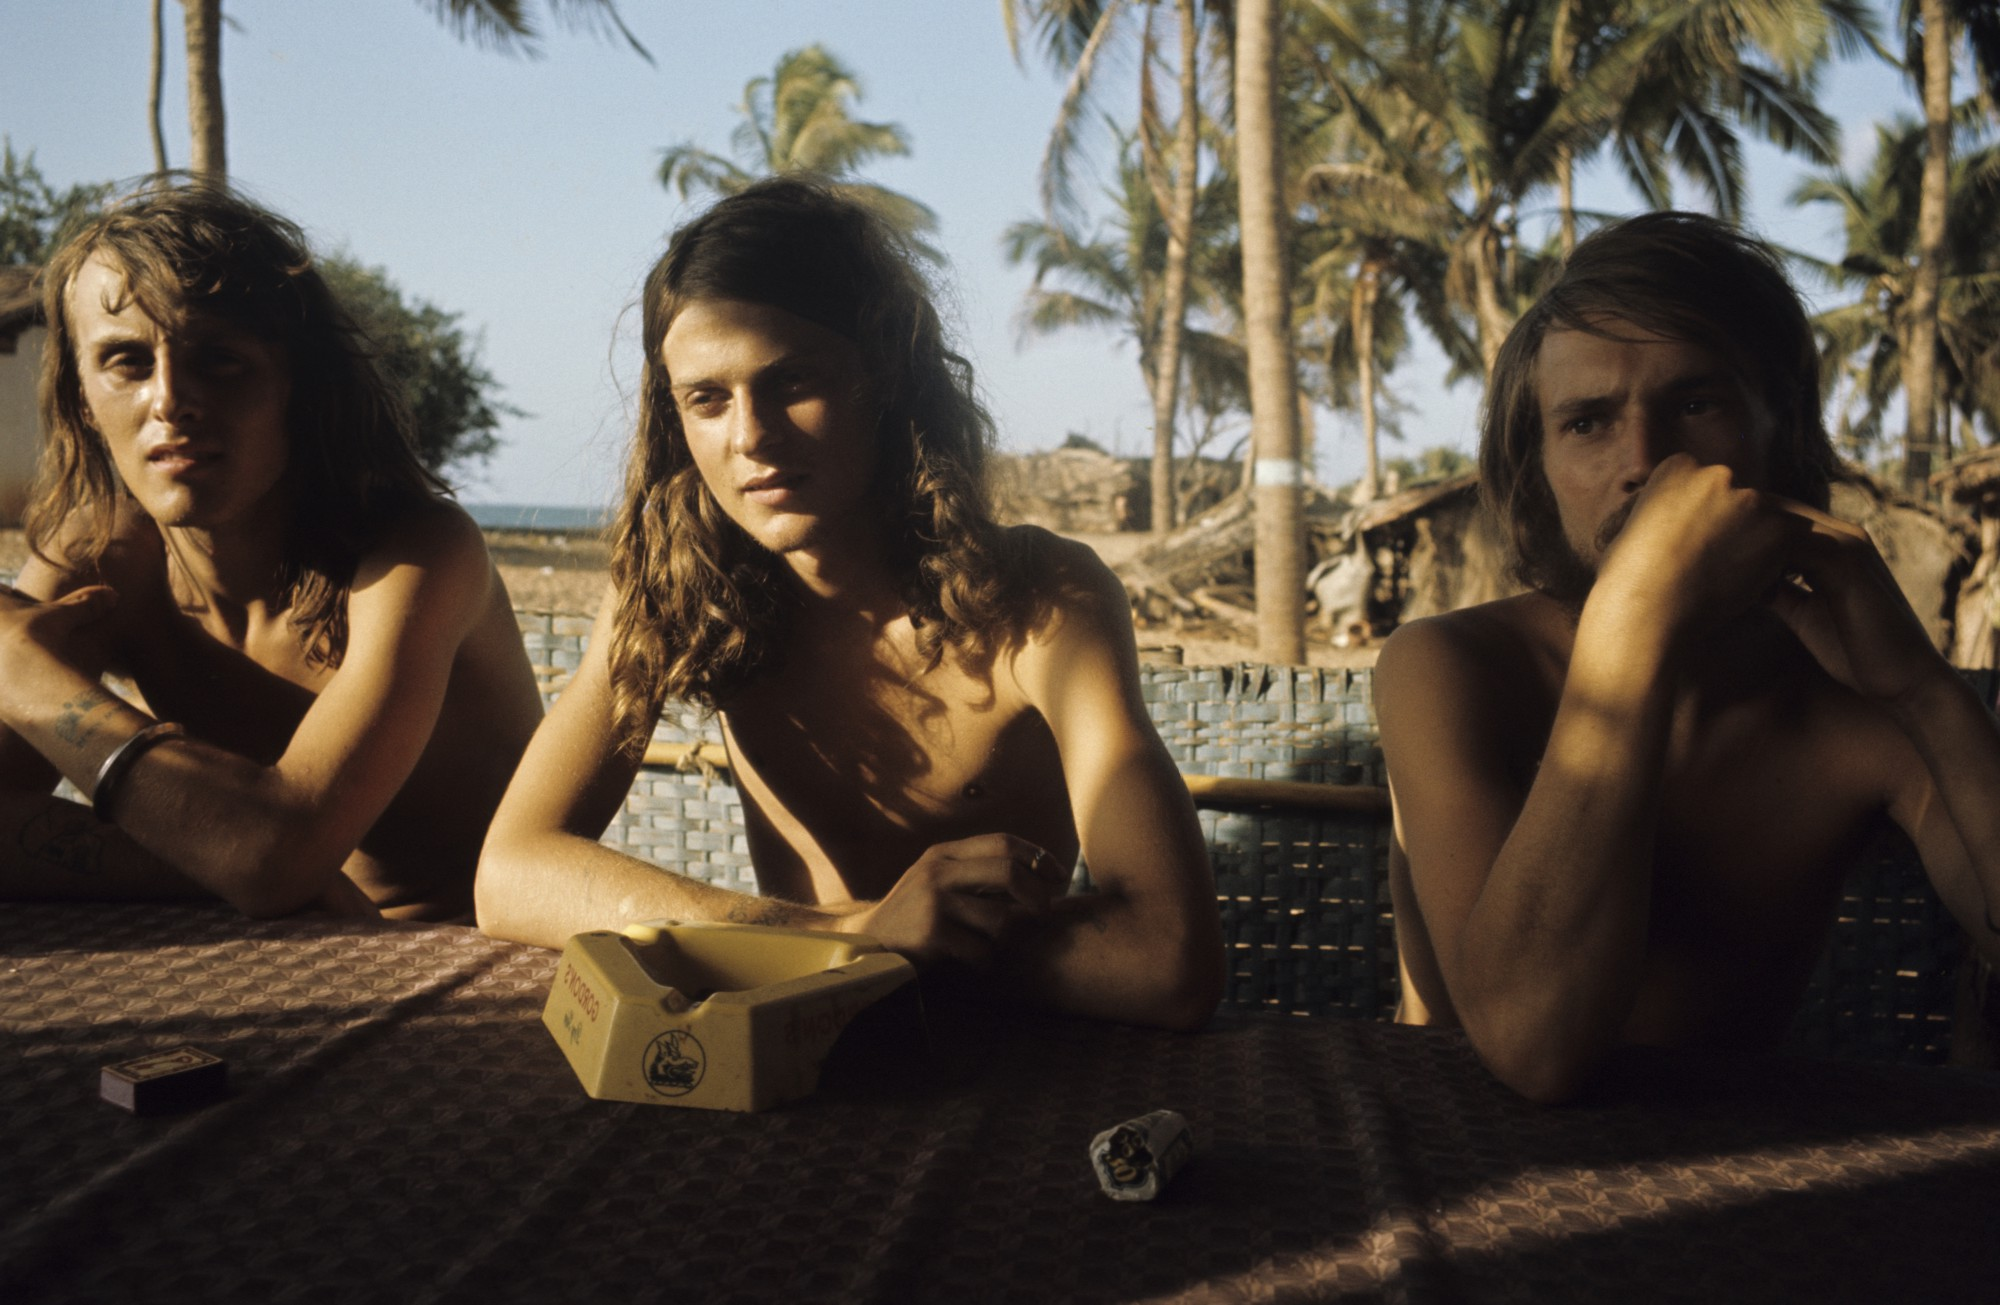 These Absurd Photos Of Young Travelers On The Hippie Trail Raise A Lot Of Questions-7492